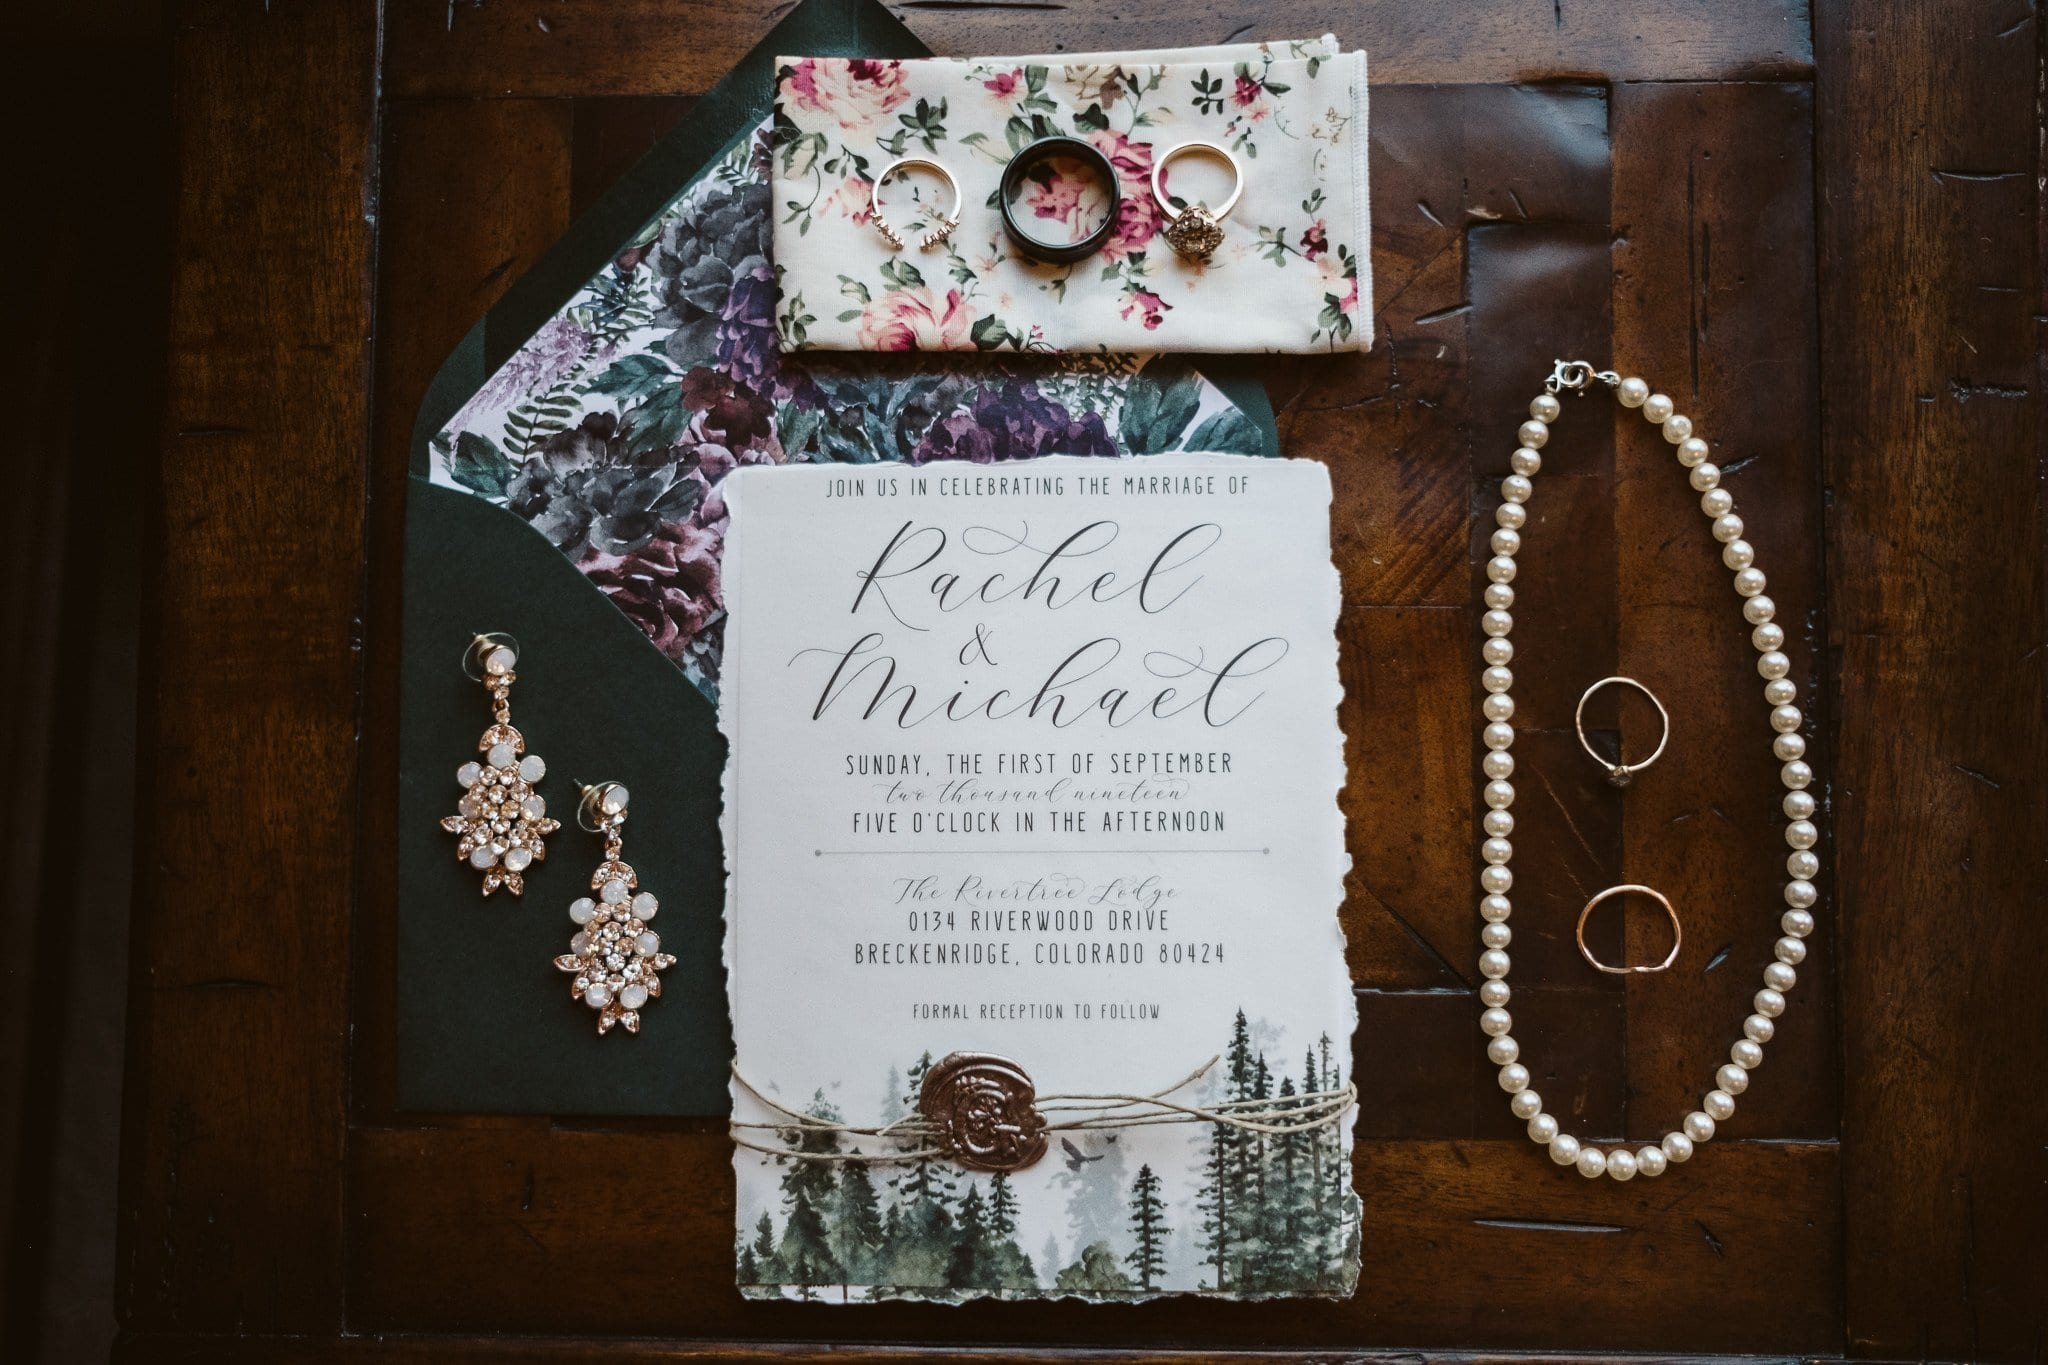 Wedding details with invitations and jewelry